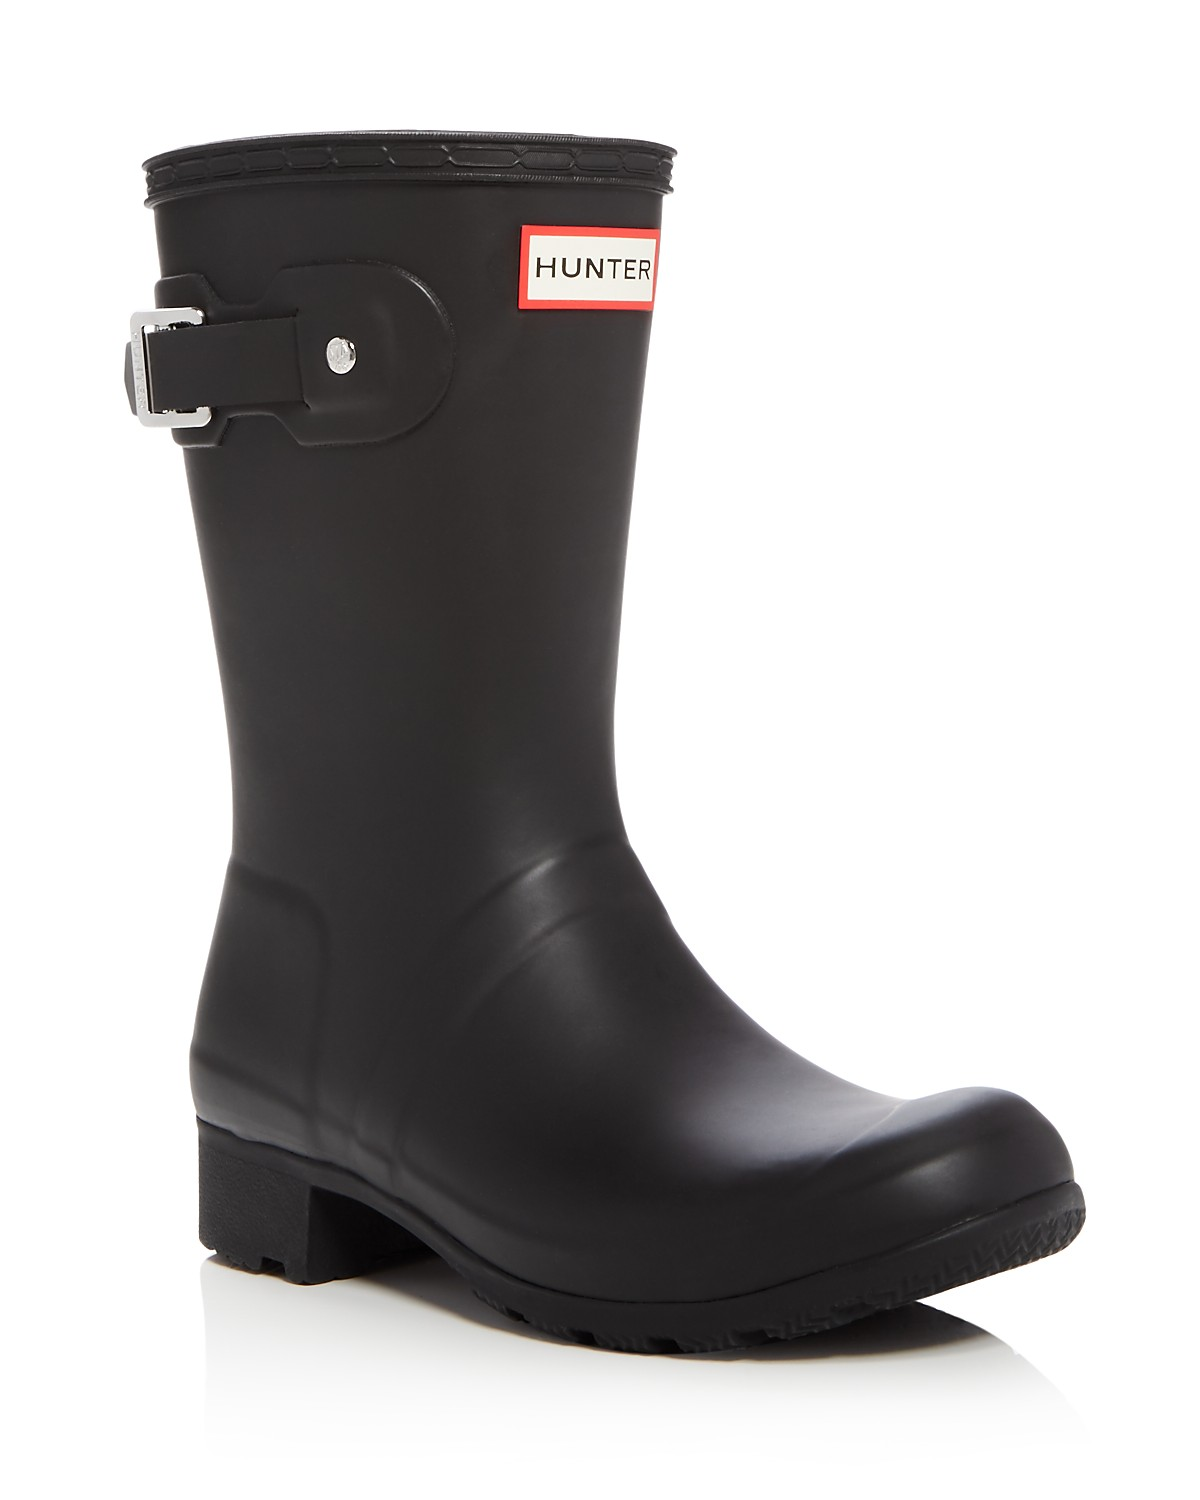 Hunter Round-Toe Rubber Rain Boots sale collections buy cheap fake uQGsl